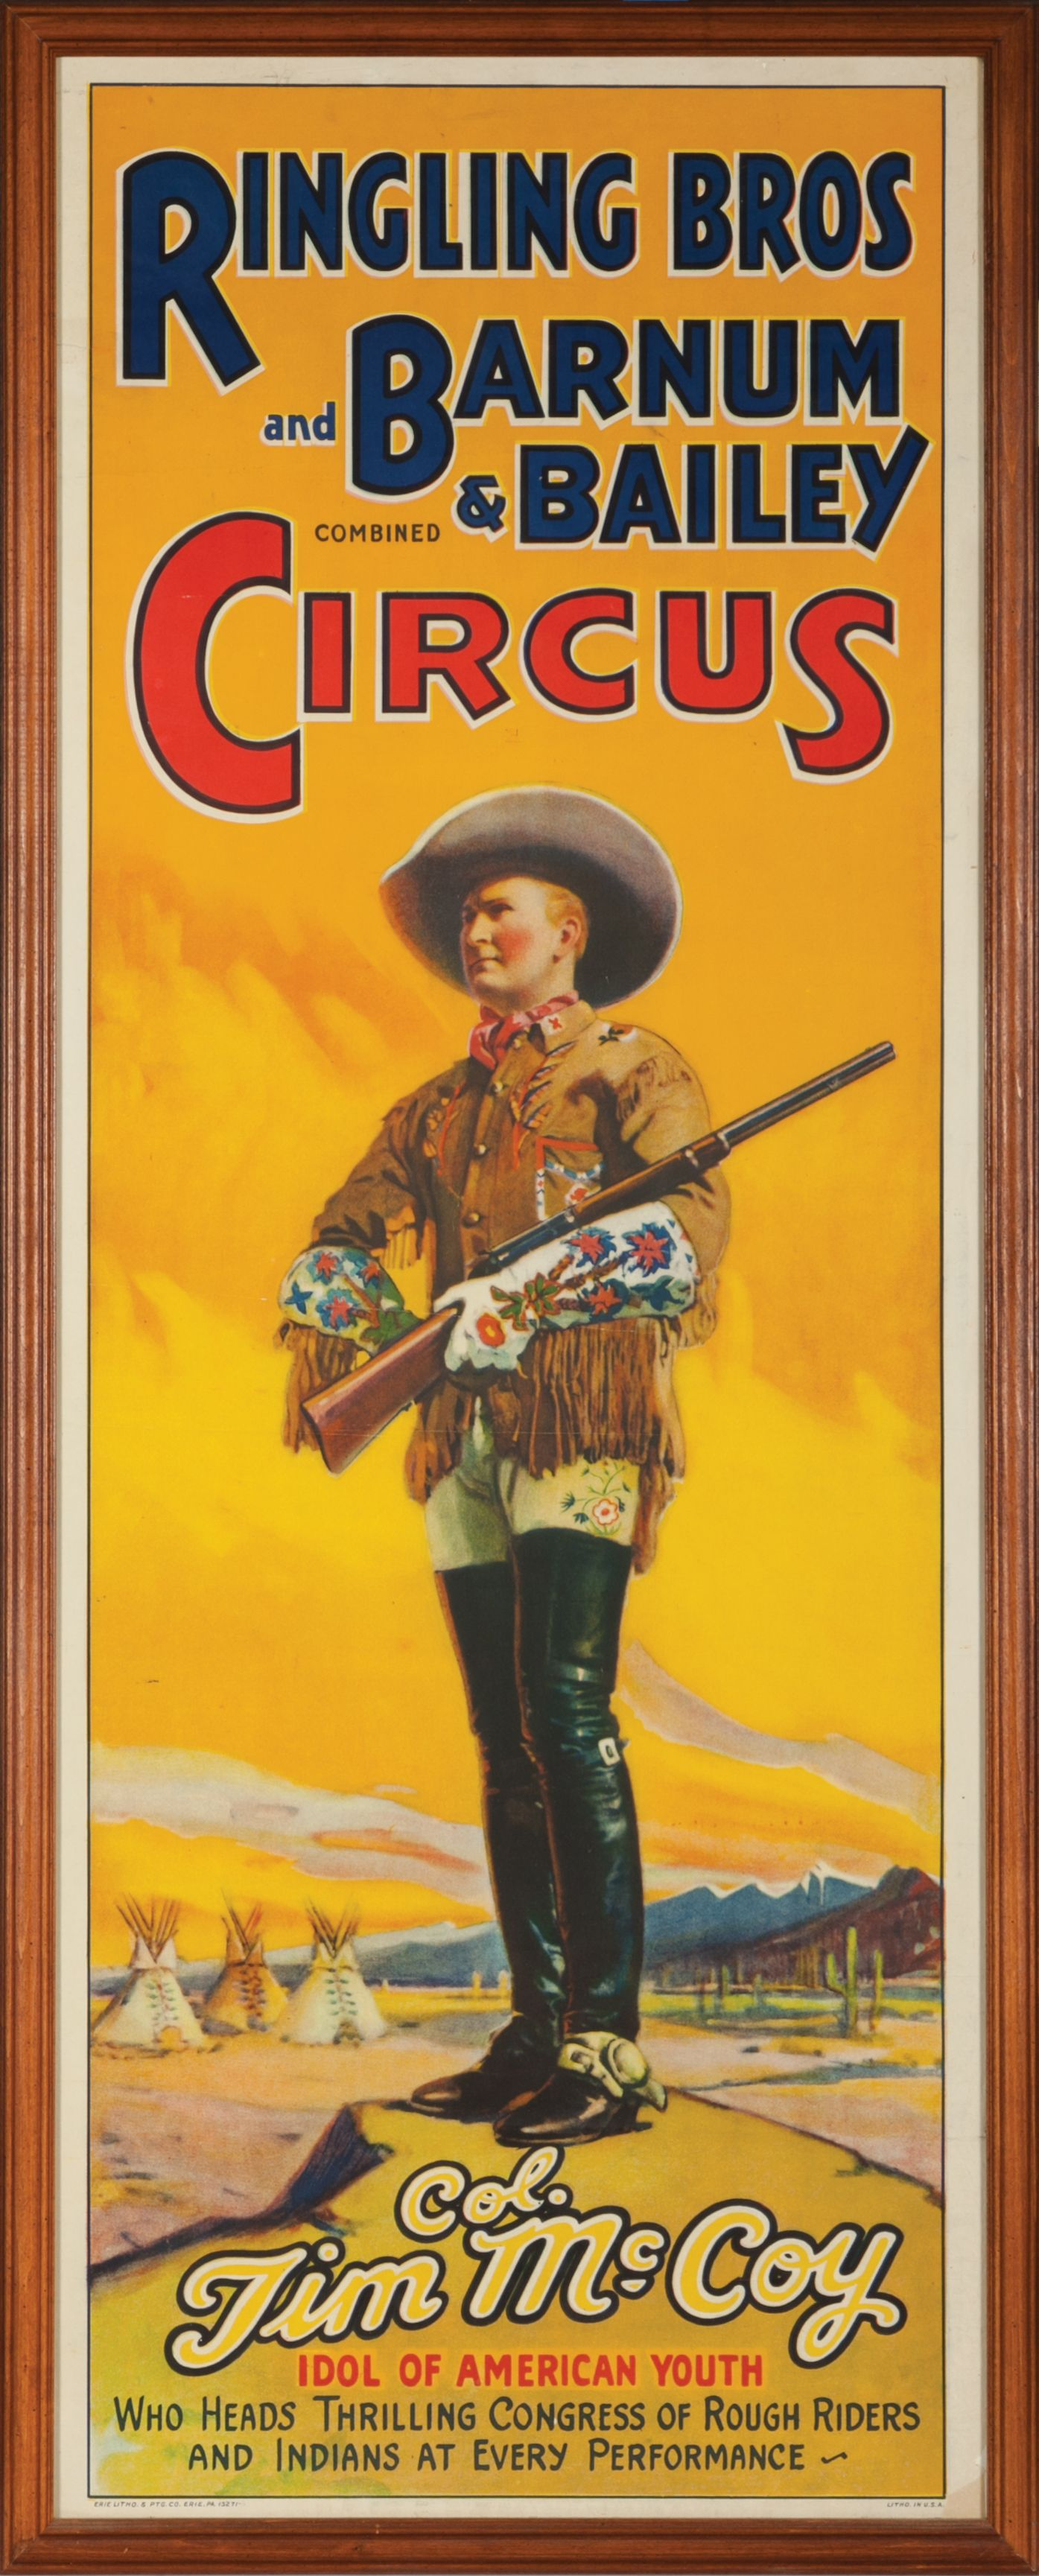 Original lithograph poster featuring Tom Mix for Ringling Bros ...